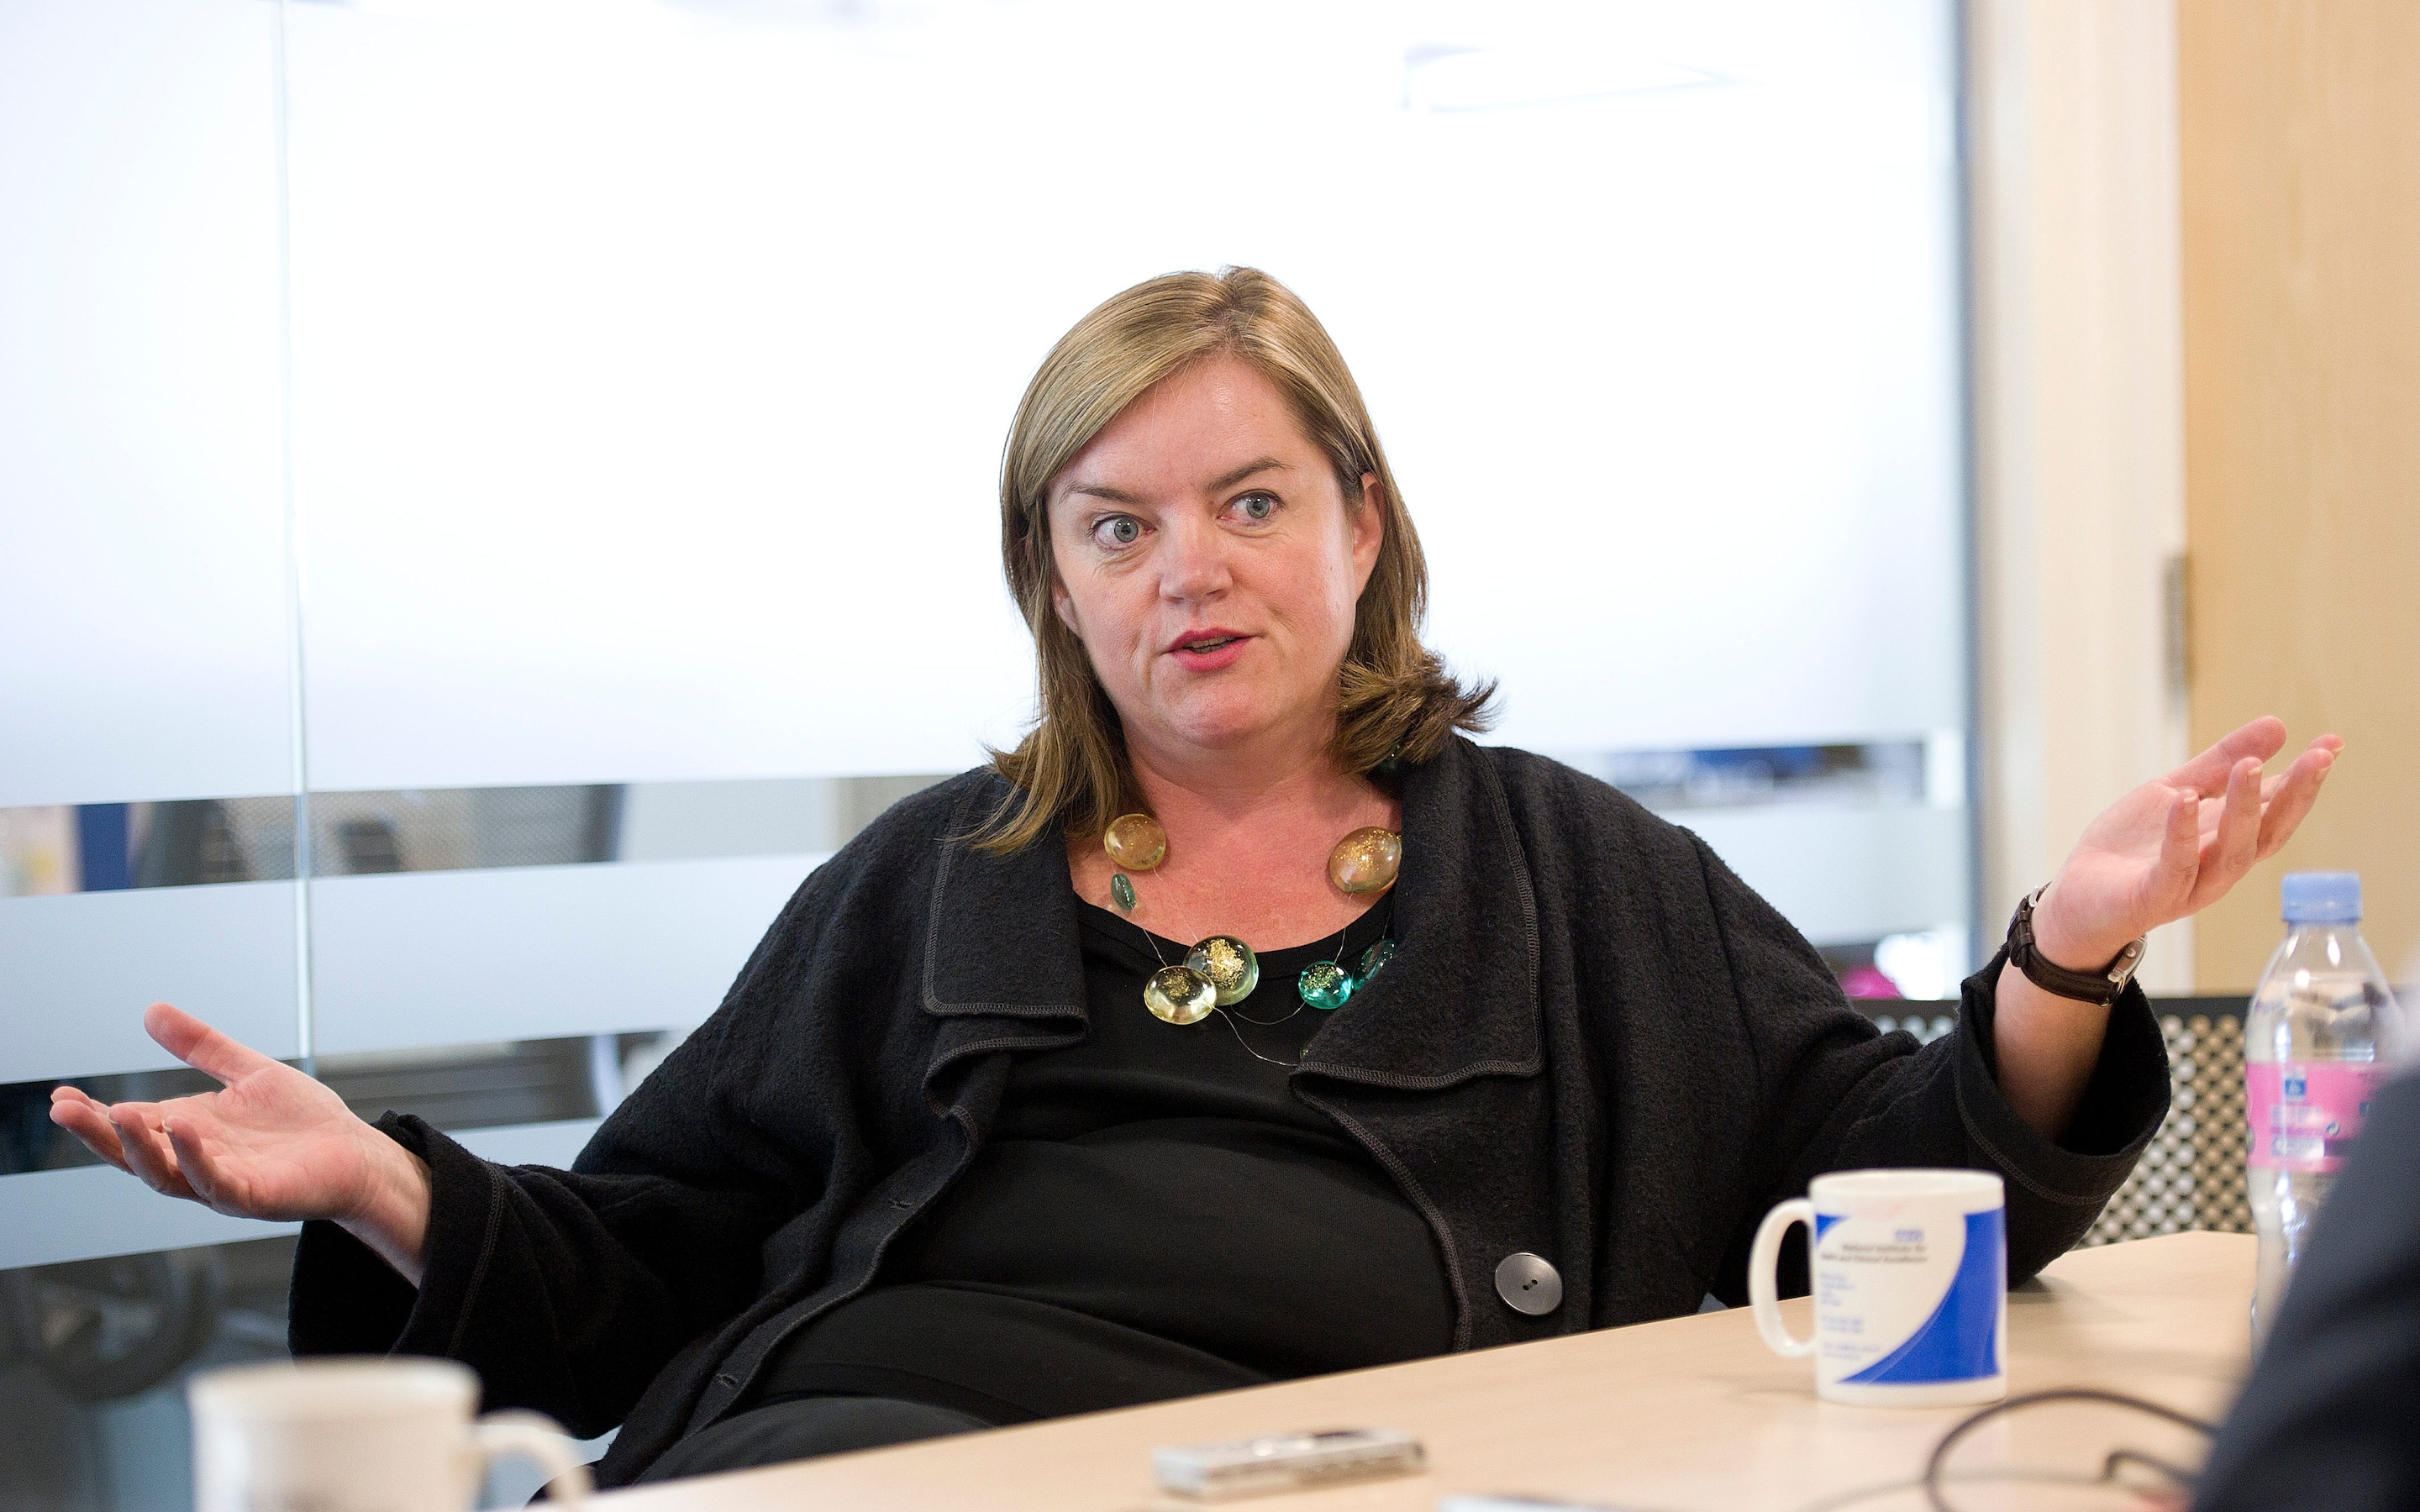 Dame Louise Casey has warned that political correctness is allowing extremism to spread